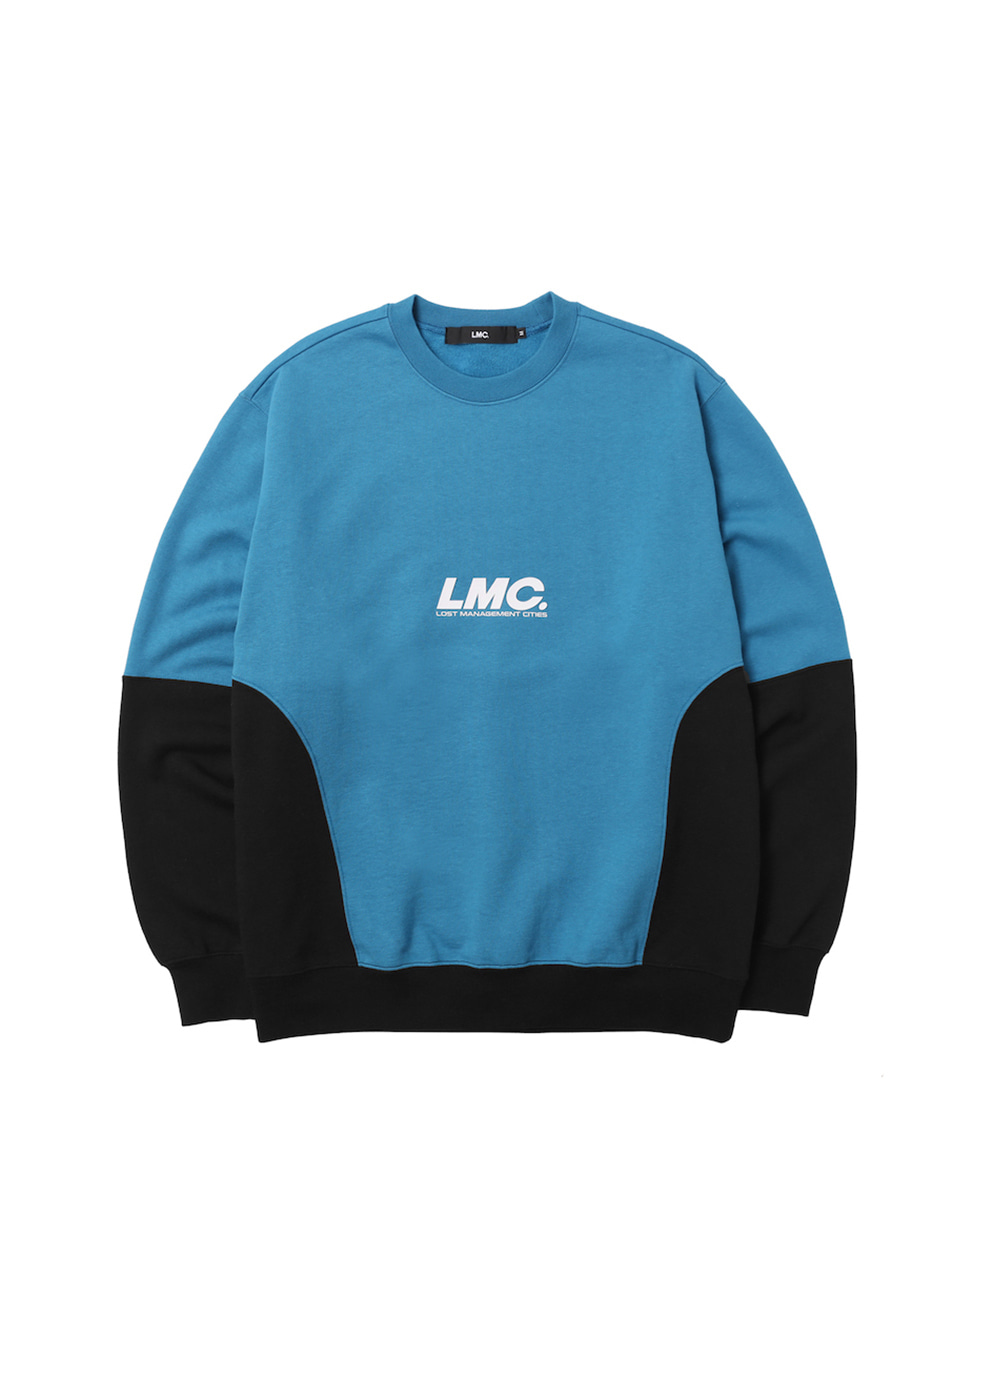 LMC HD SPLIT SWEATSHIRT vtg blue